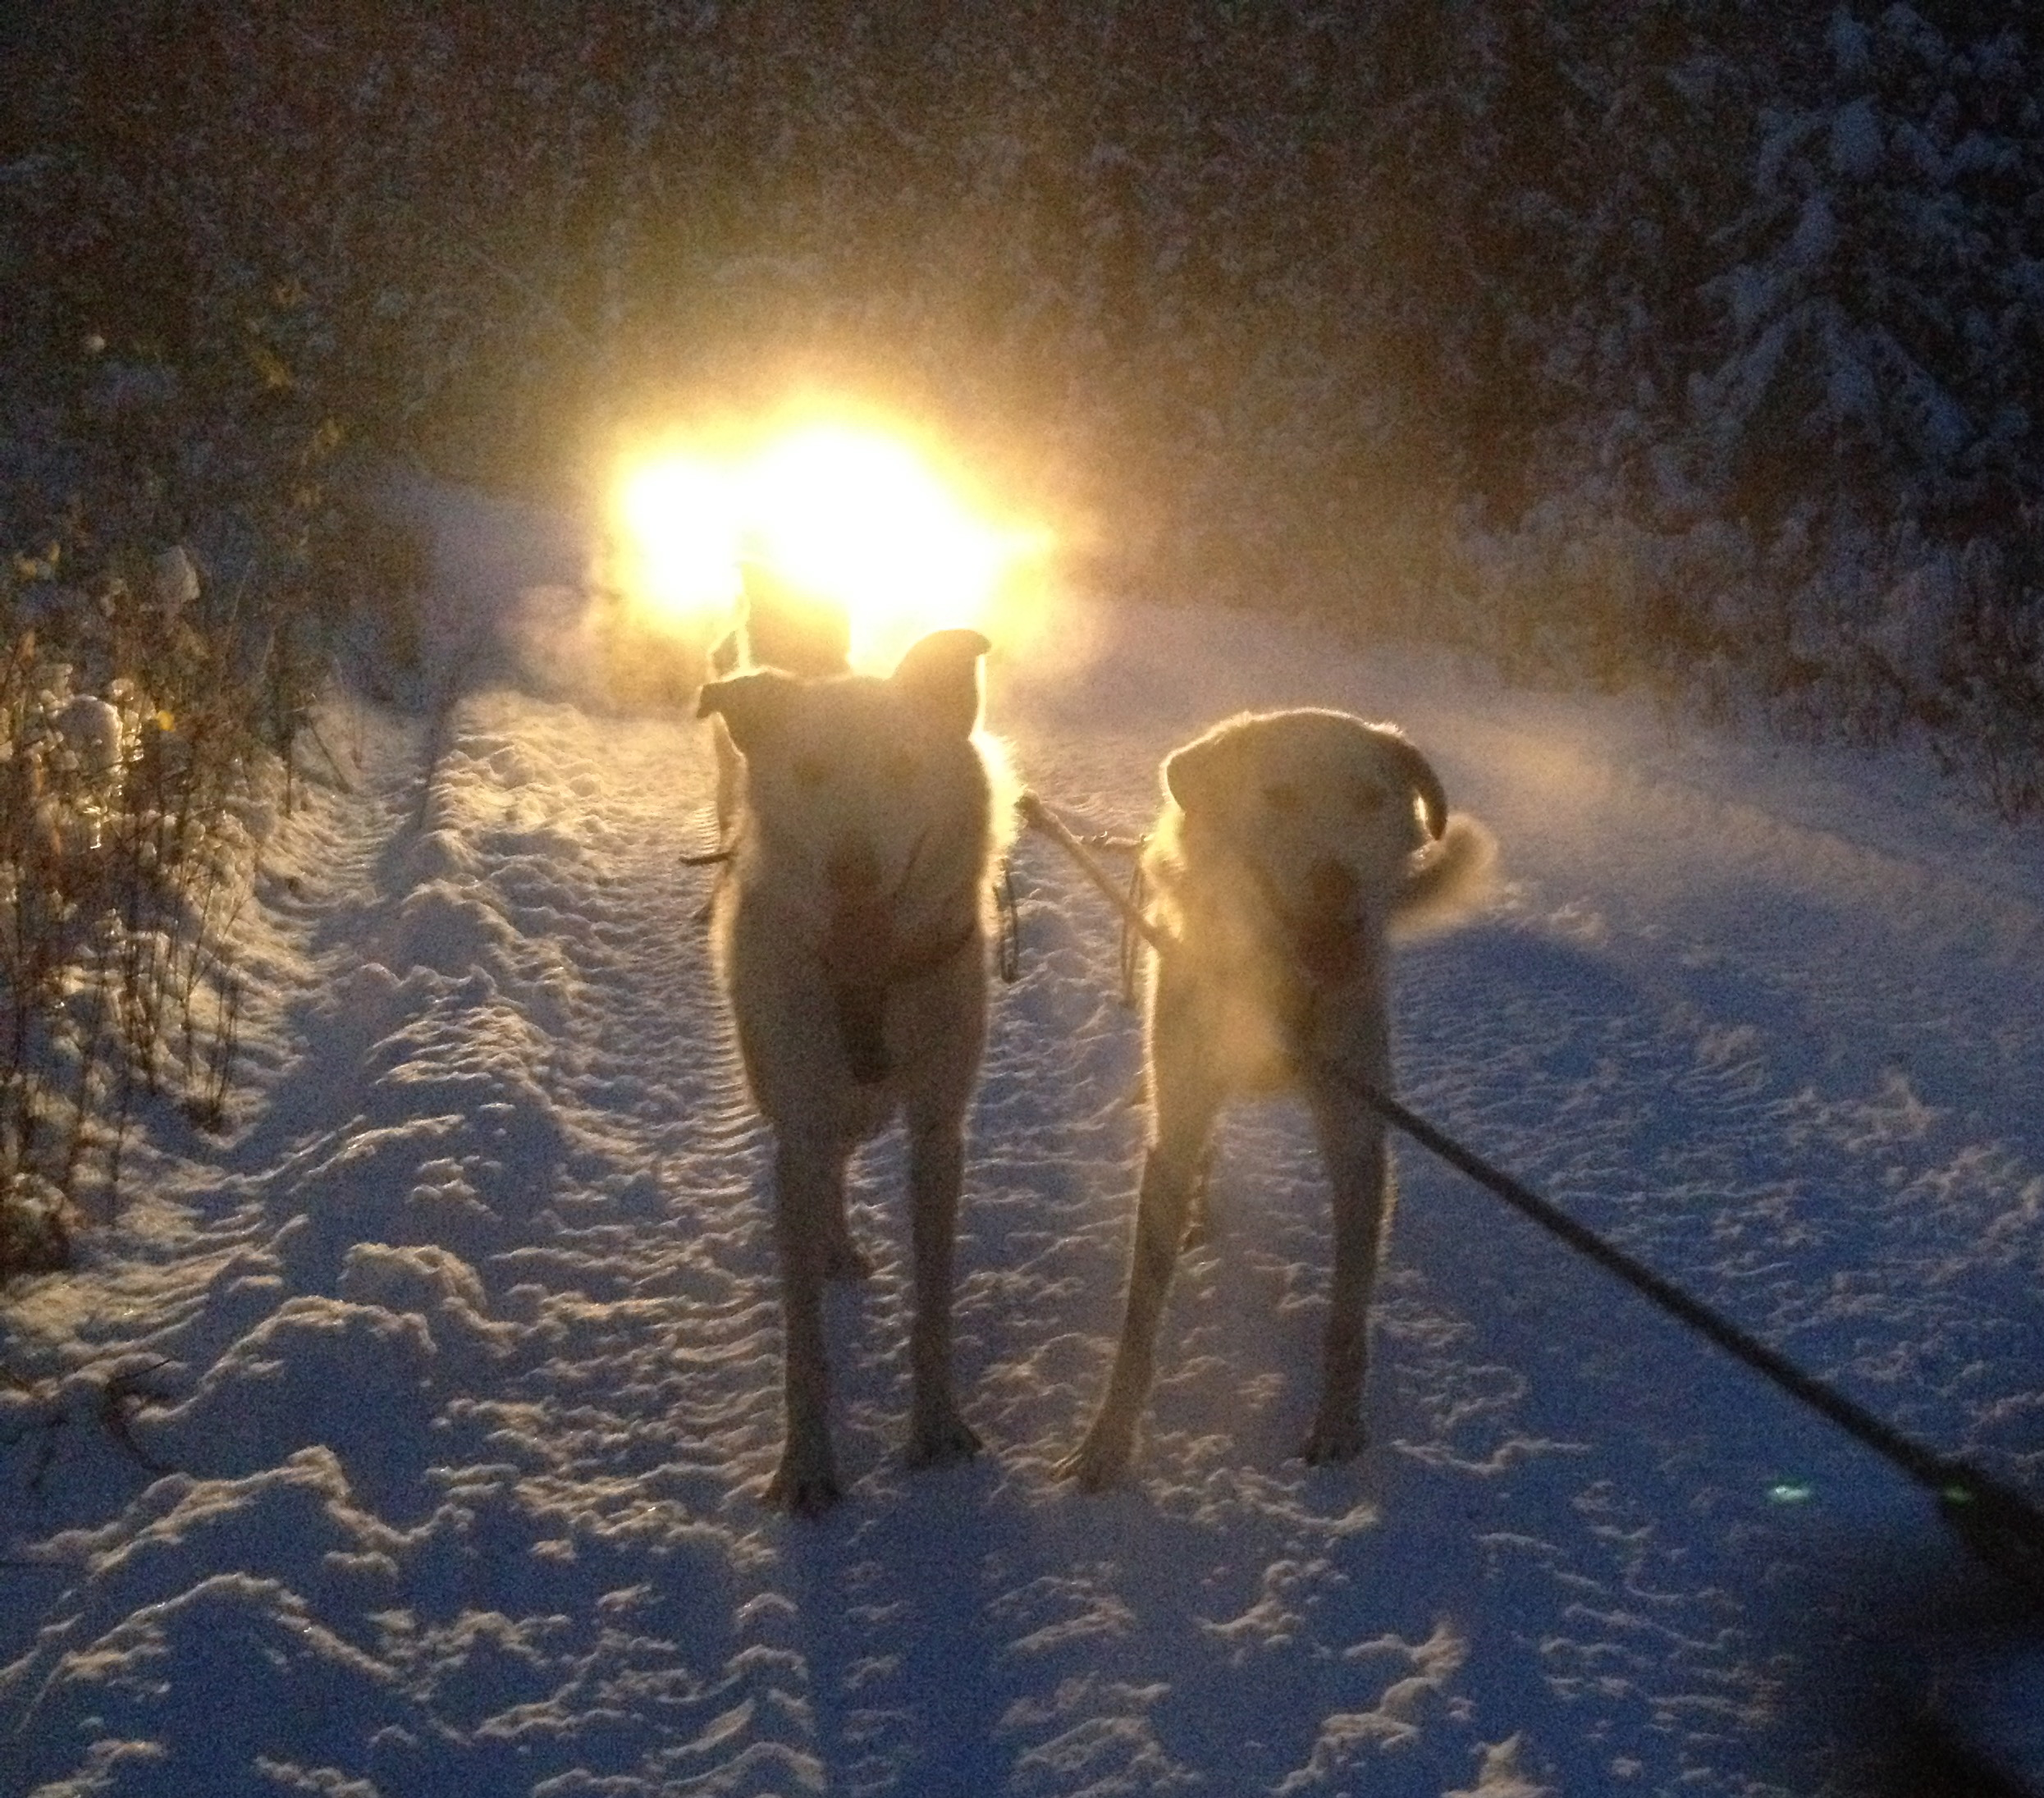 Lefty and Fenton illuminated by the lights of the ATV